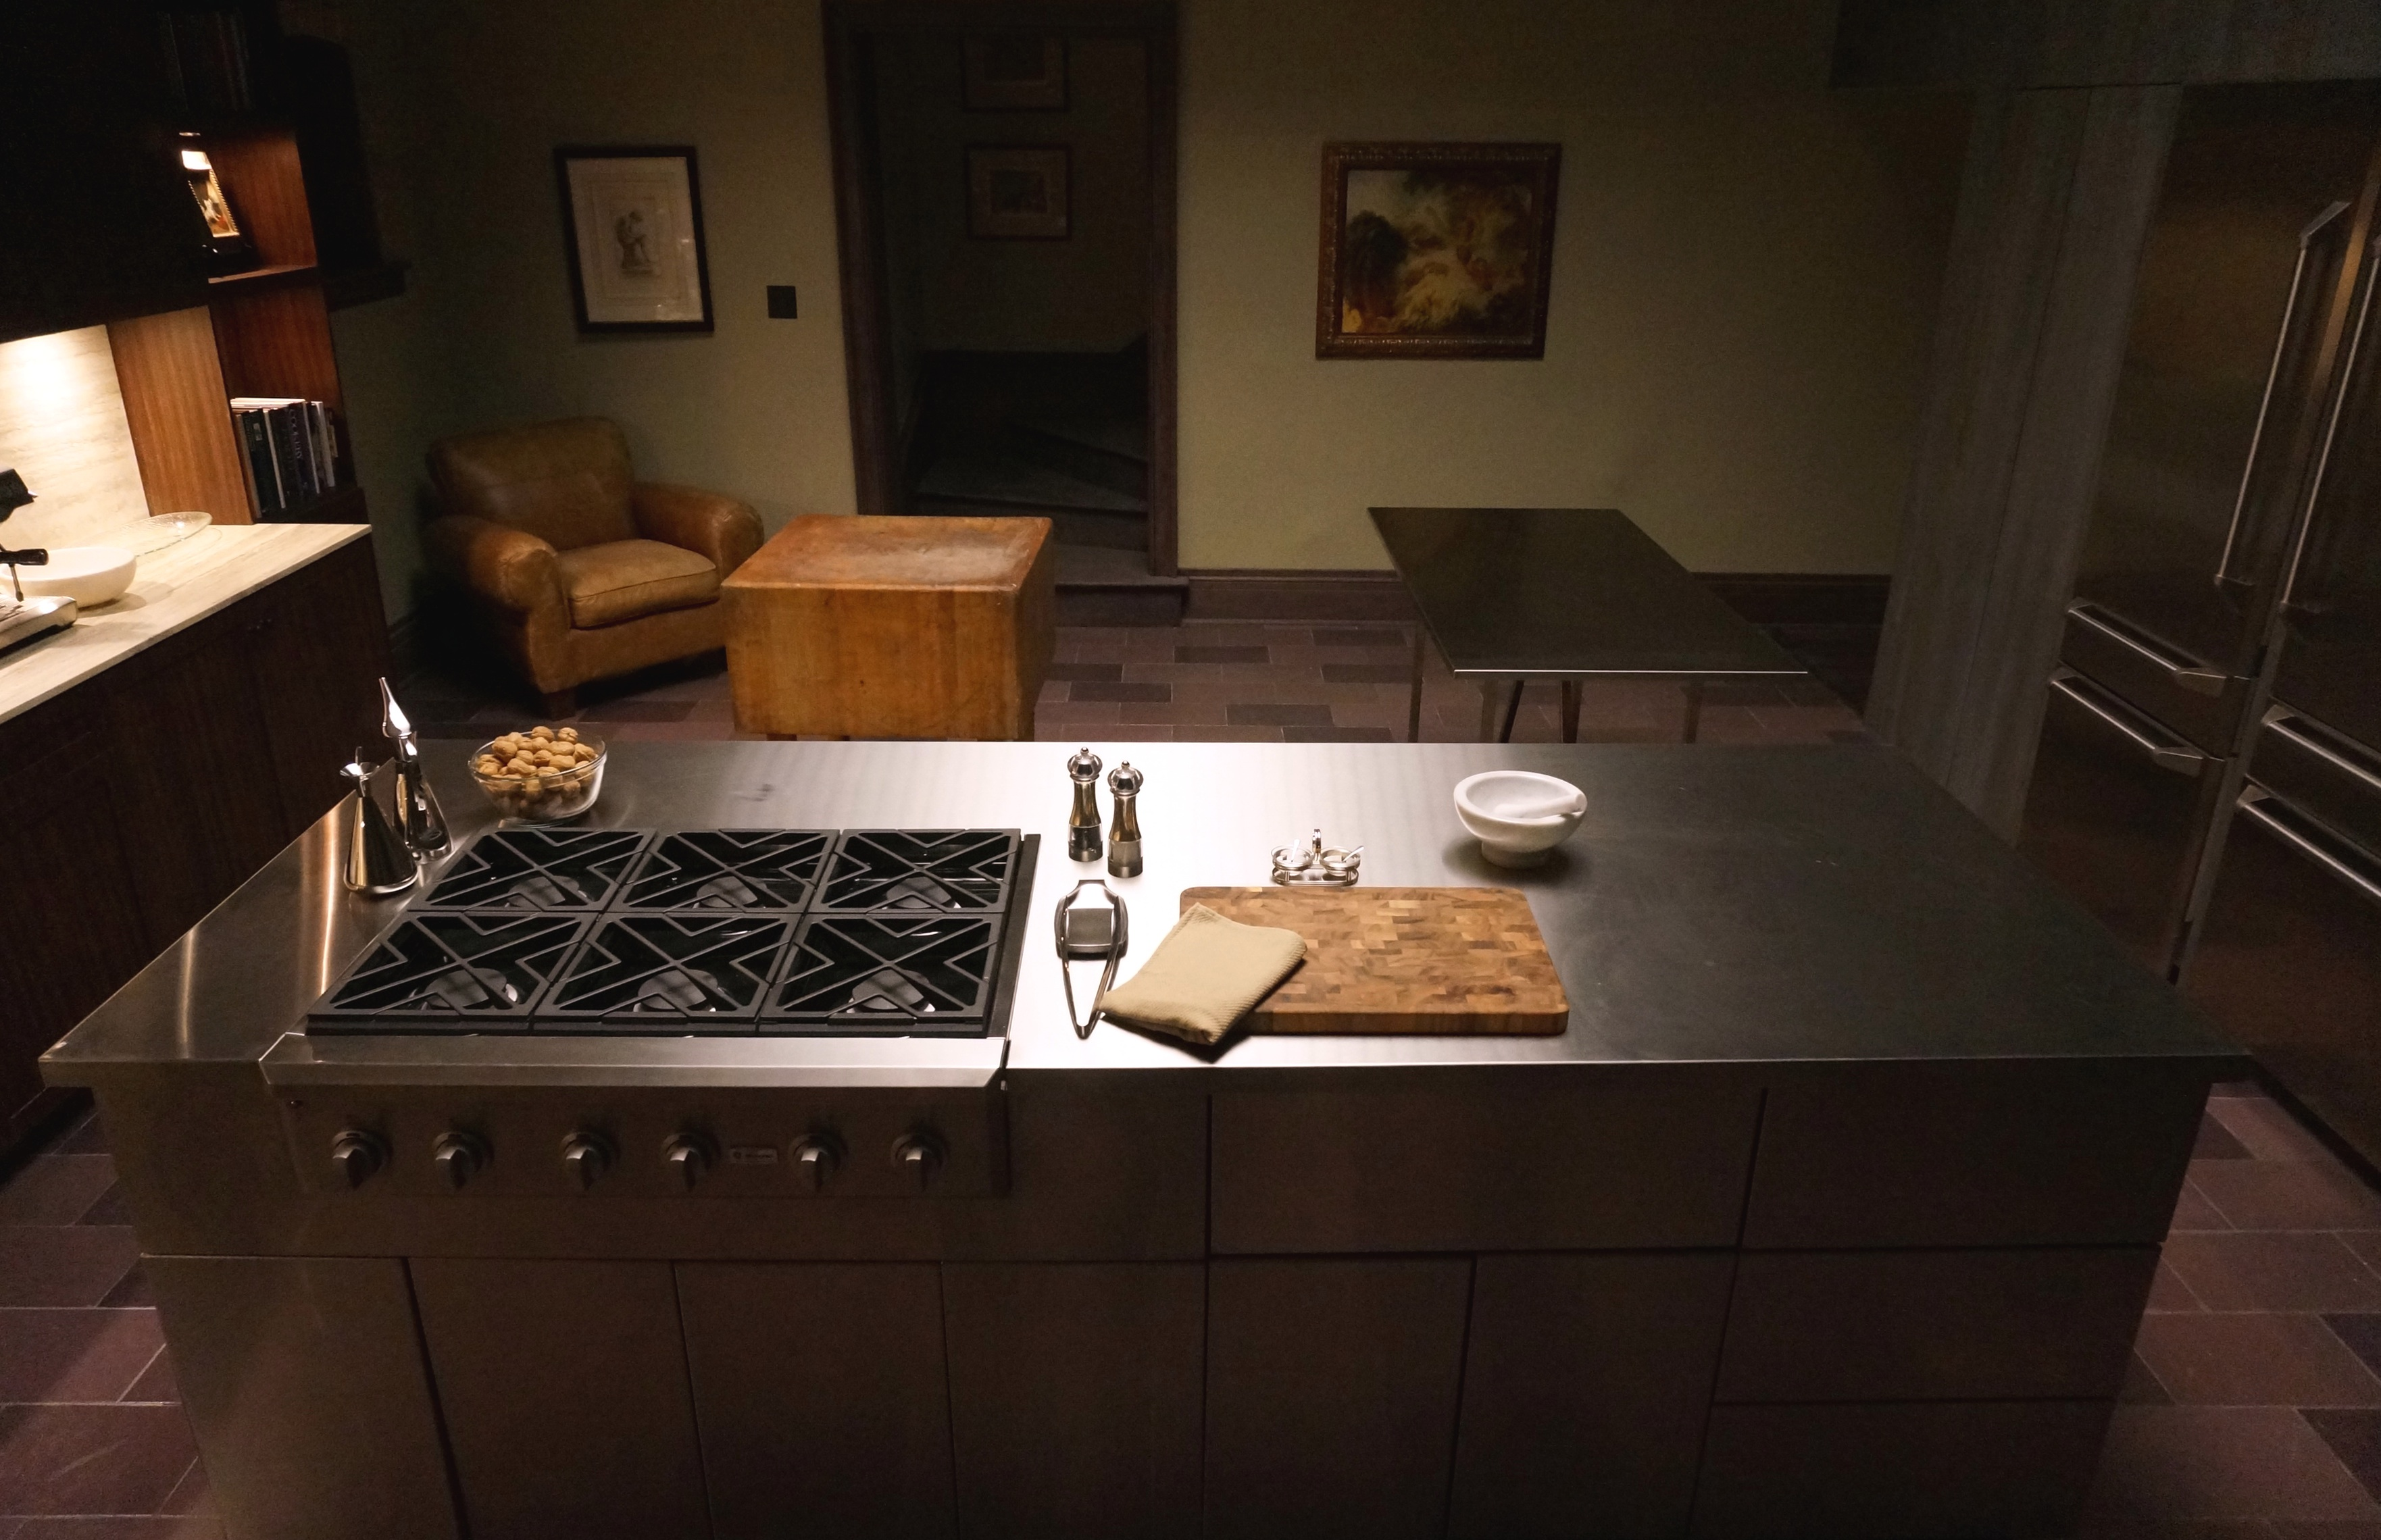 Hannibal - Show picture of kitchen ...